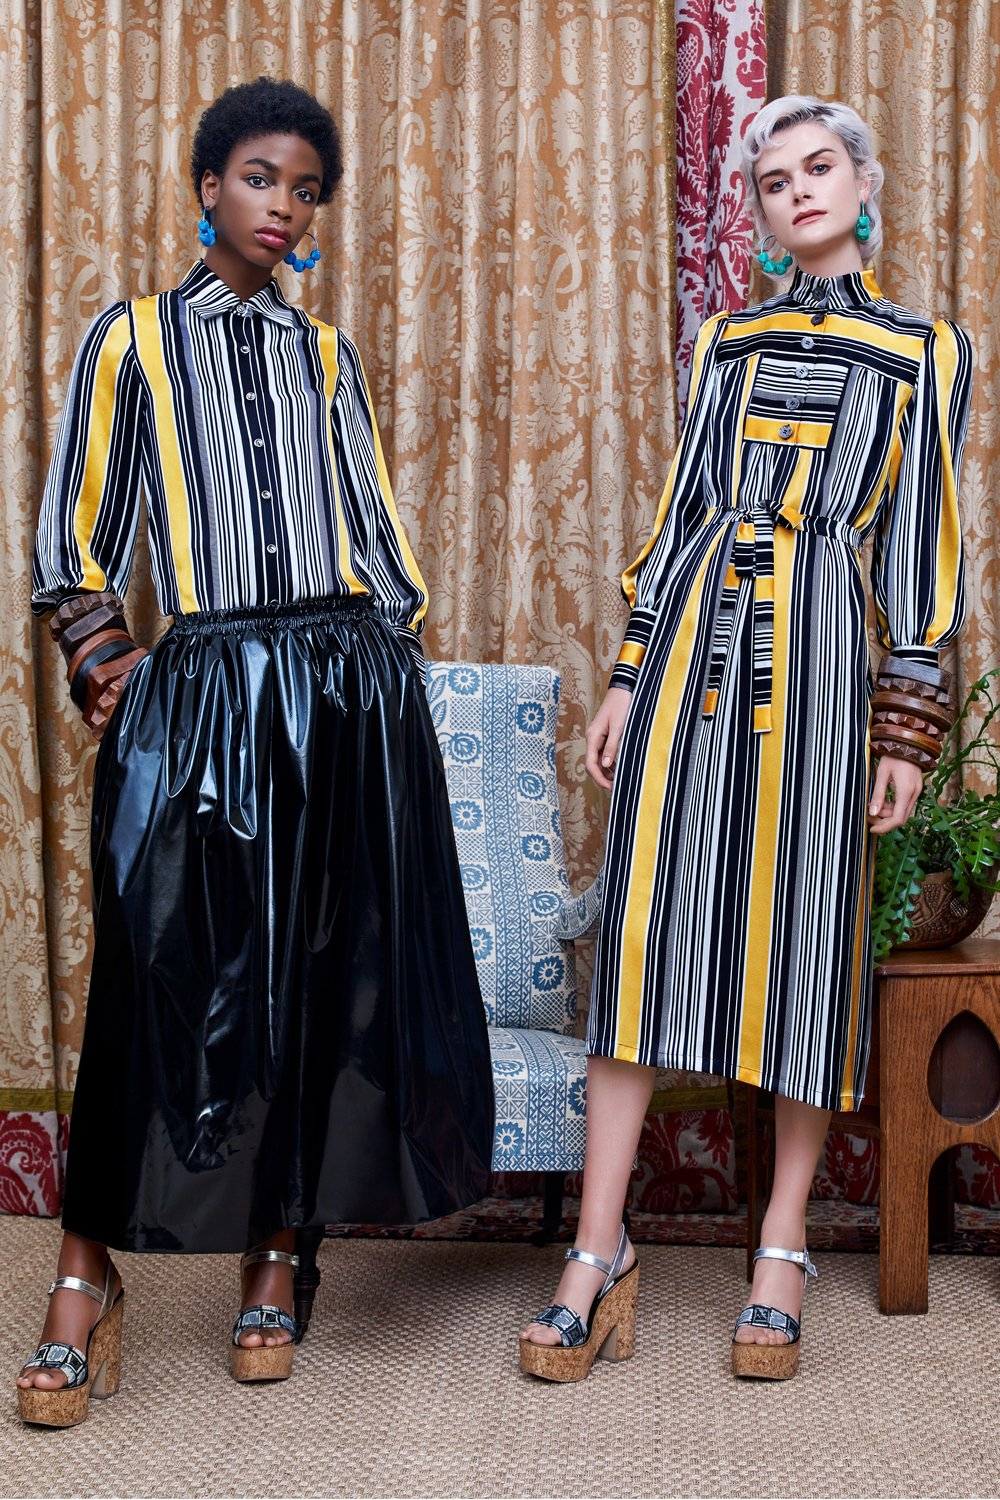 00006-duro-olowu-collection-spring-2019-ready-to-wear.jpg